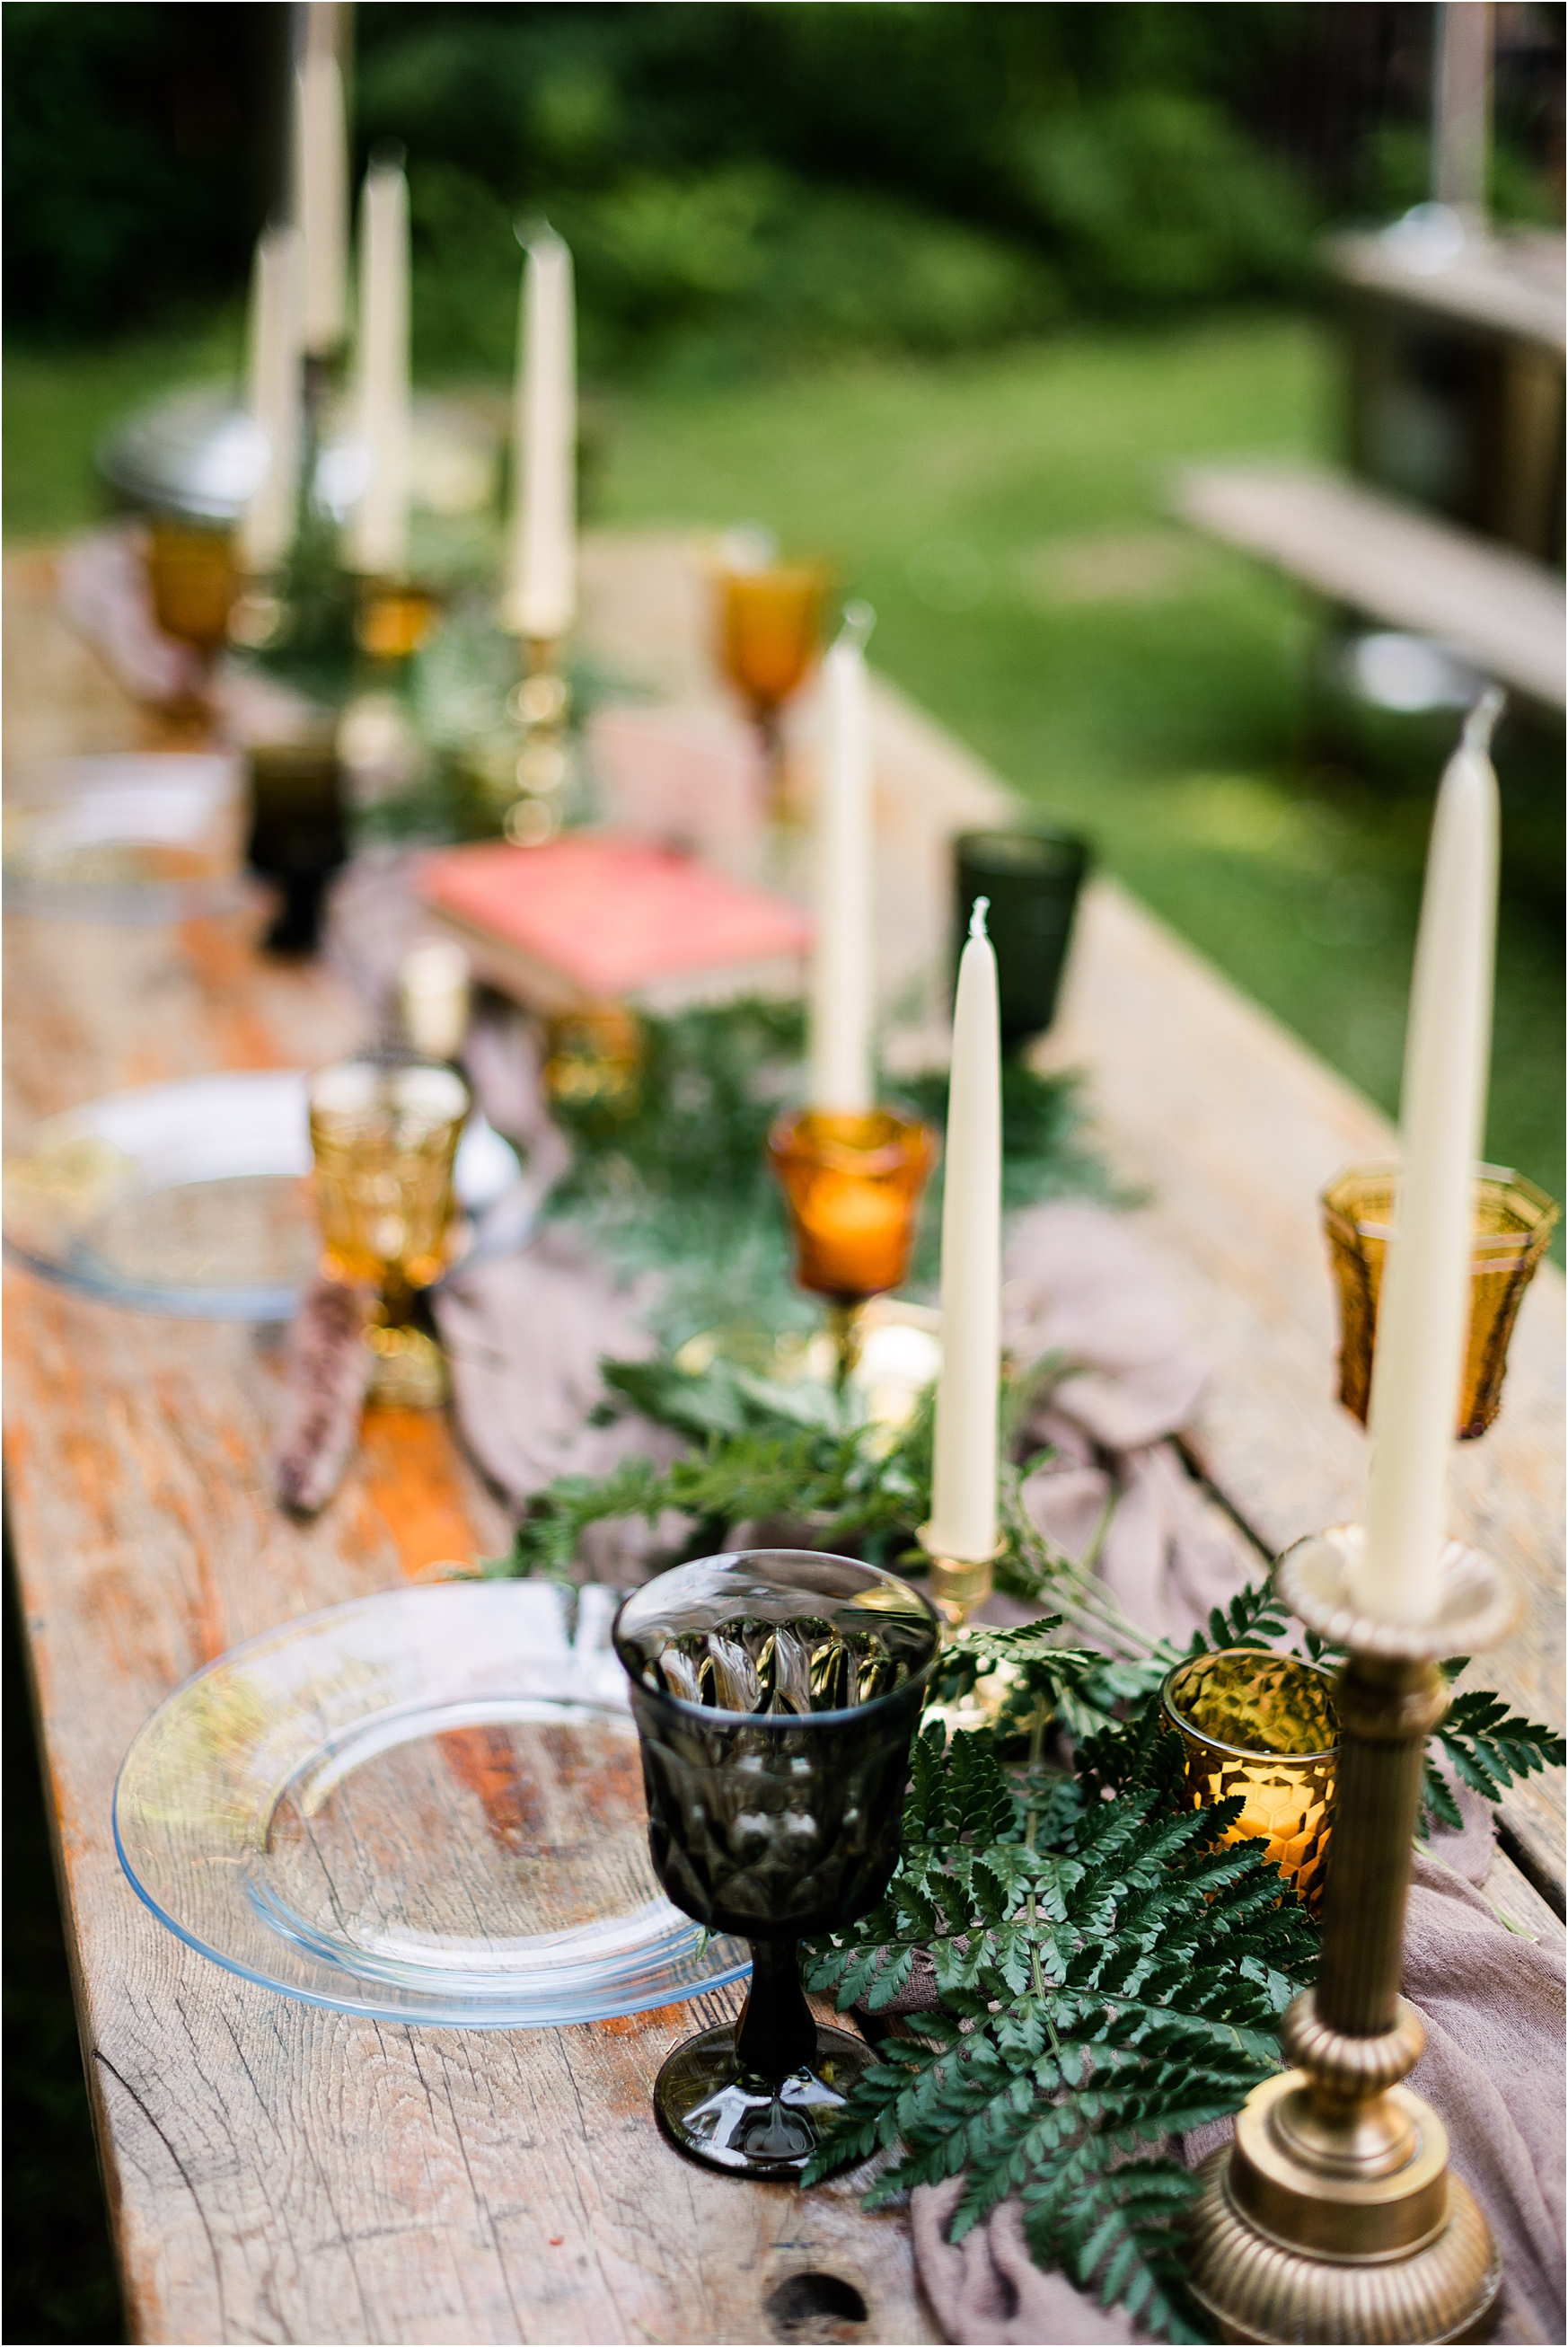 Reception Tablescape & Decor at Cassy & Viva's bohemian Oregon destination wedding at Camp Lane. Image by Forthright Photo.